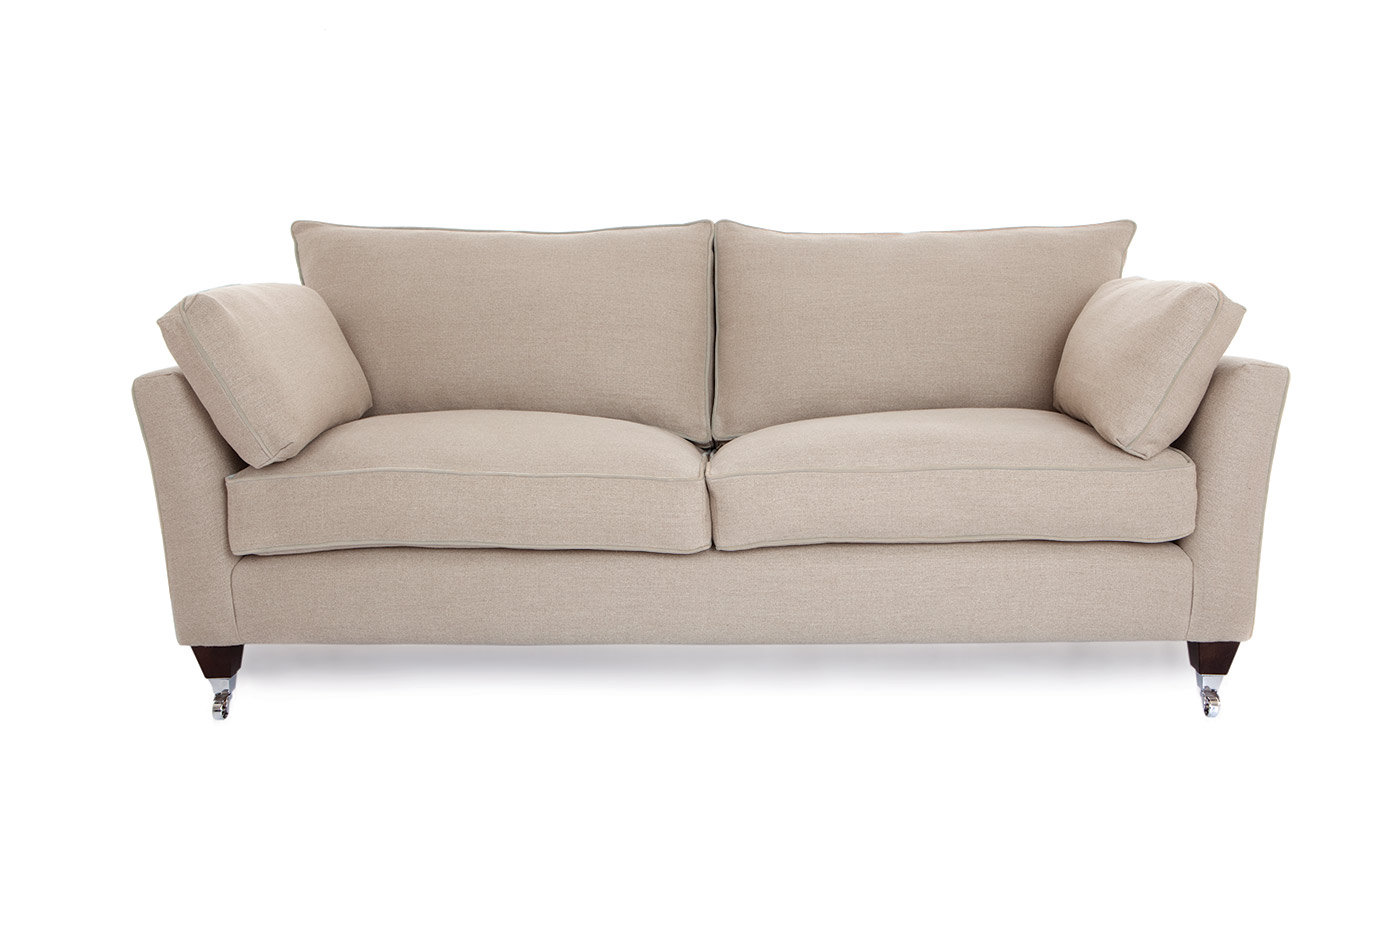 Charlotte sofa charlotte 011013 thesofa for Charlotte sectional sofa and ottoman